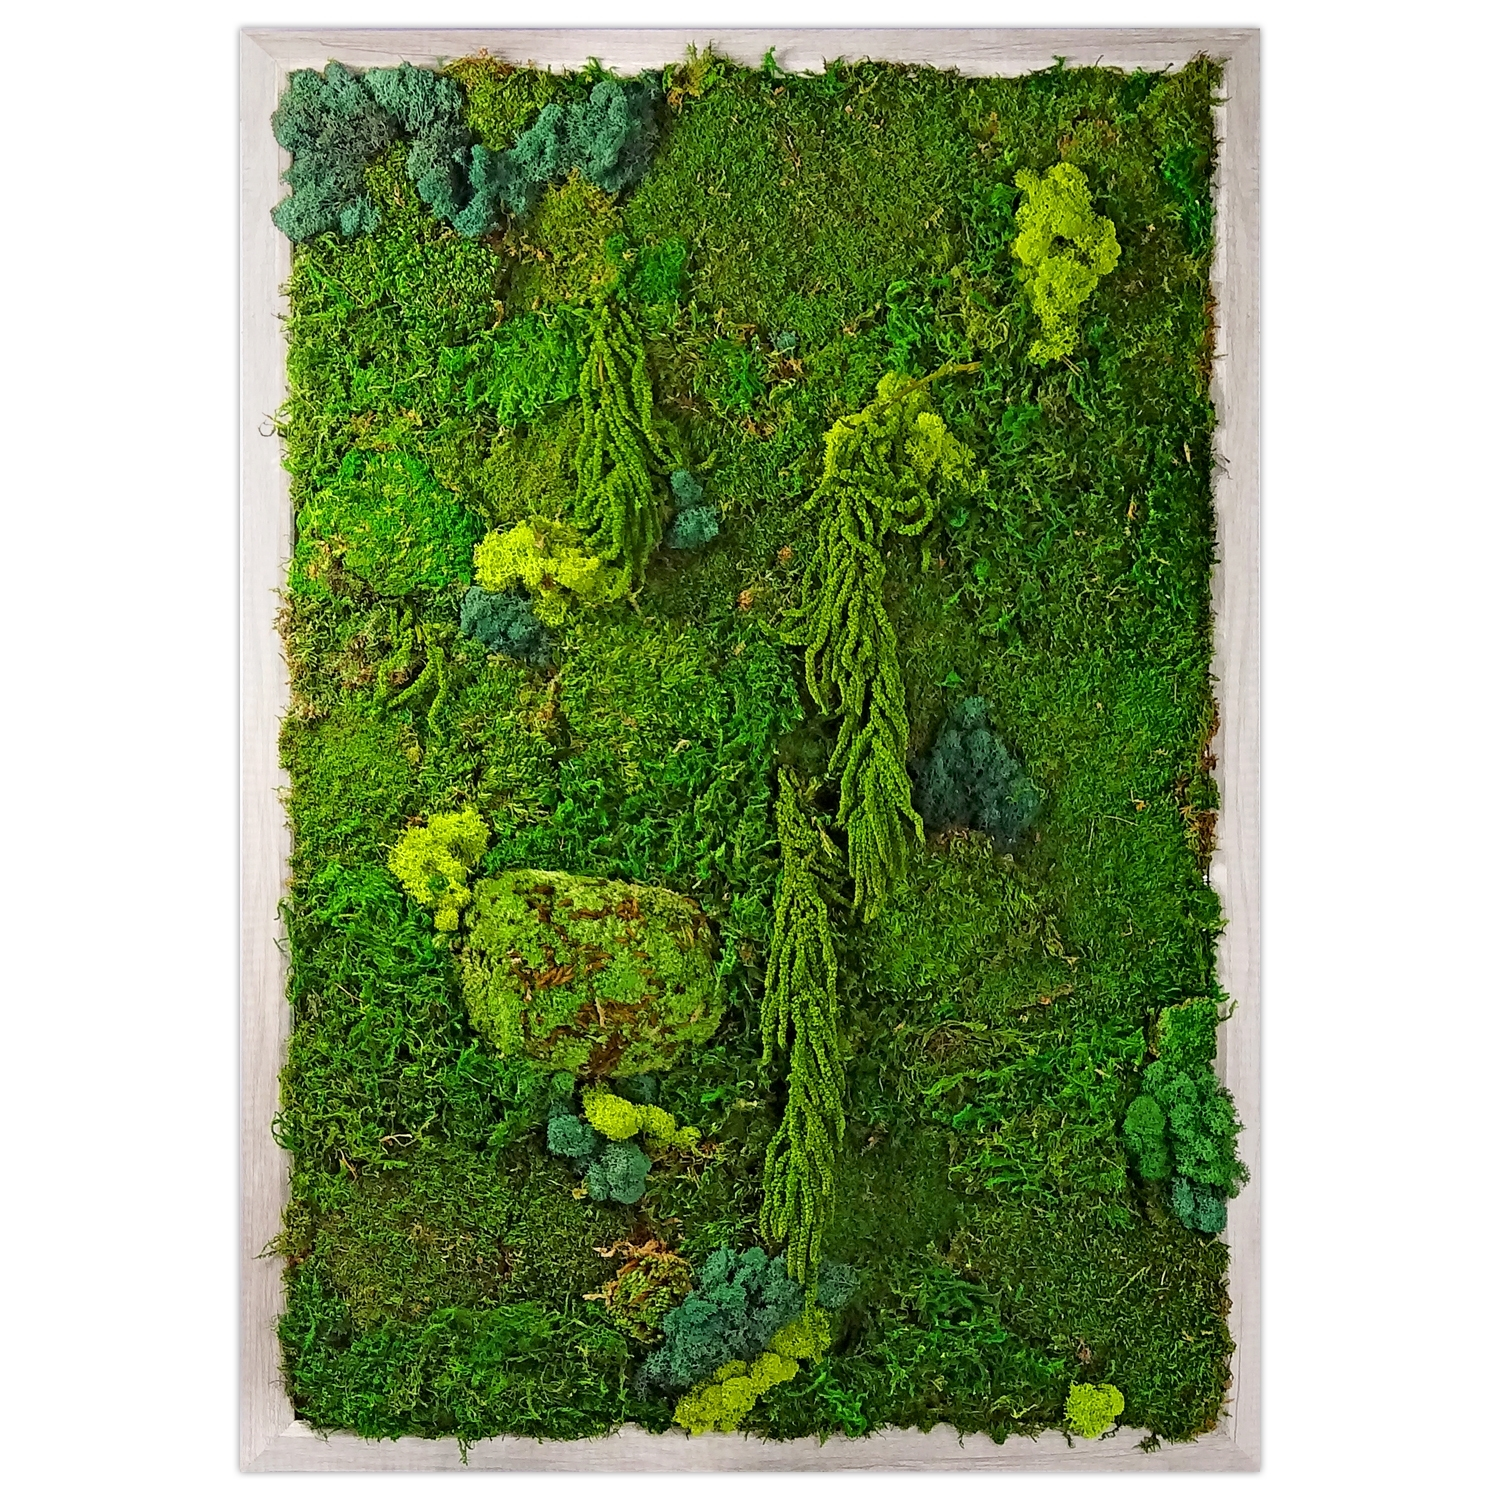 Preserved Moss Wall Garden | Luludi Living Art | Kaufmann Mercantile Pertaining To Most Up To Date Moss Wall Art (View 18 of 20)